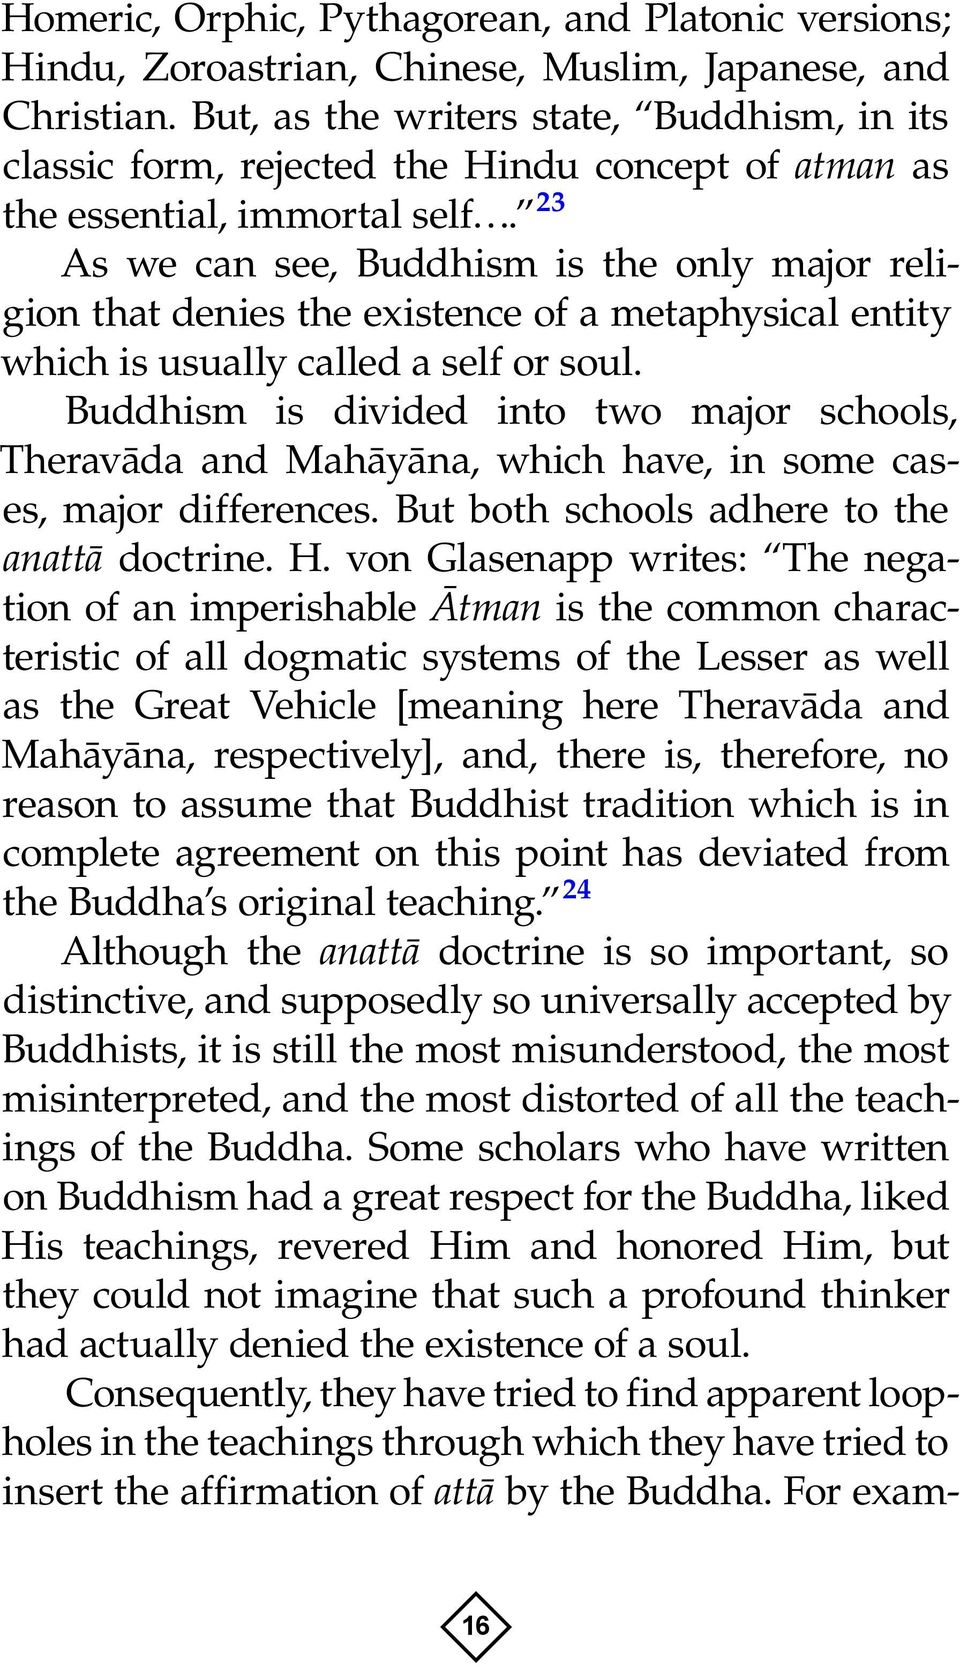 23 As we can see, Buddhism is the only major religion that denies the existence of a metaphysical entity which is usually called a self or soul.